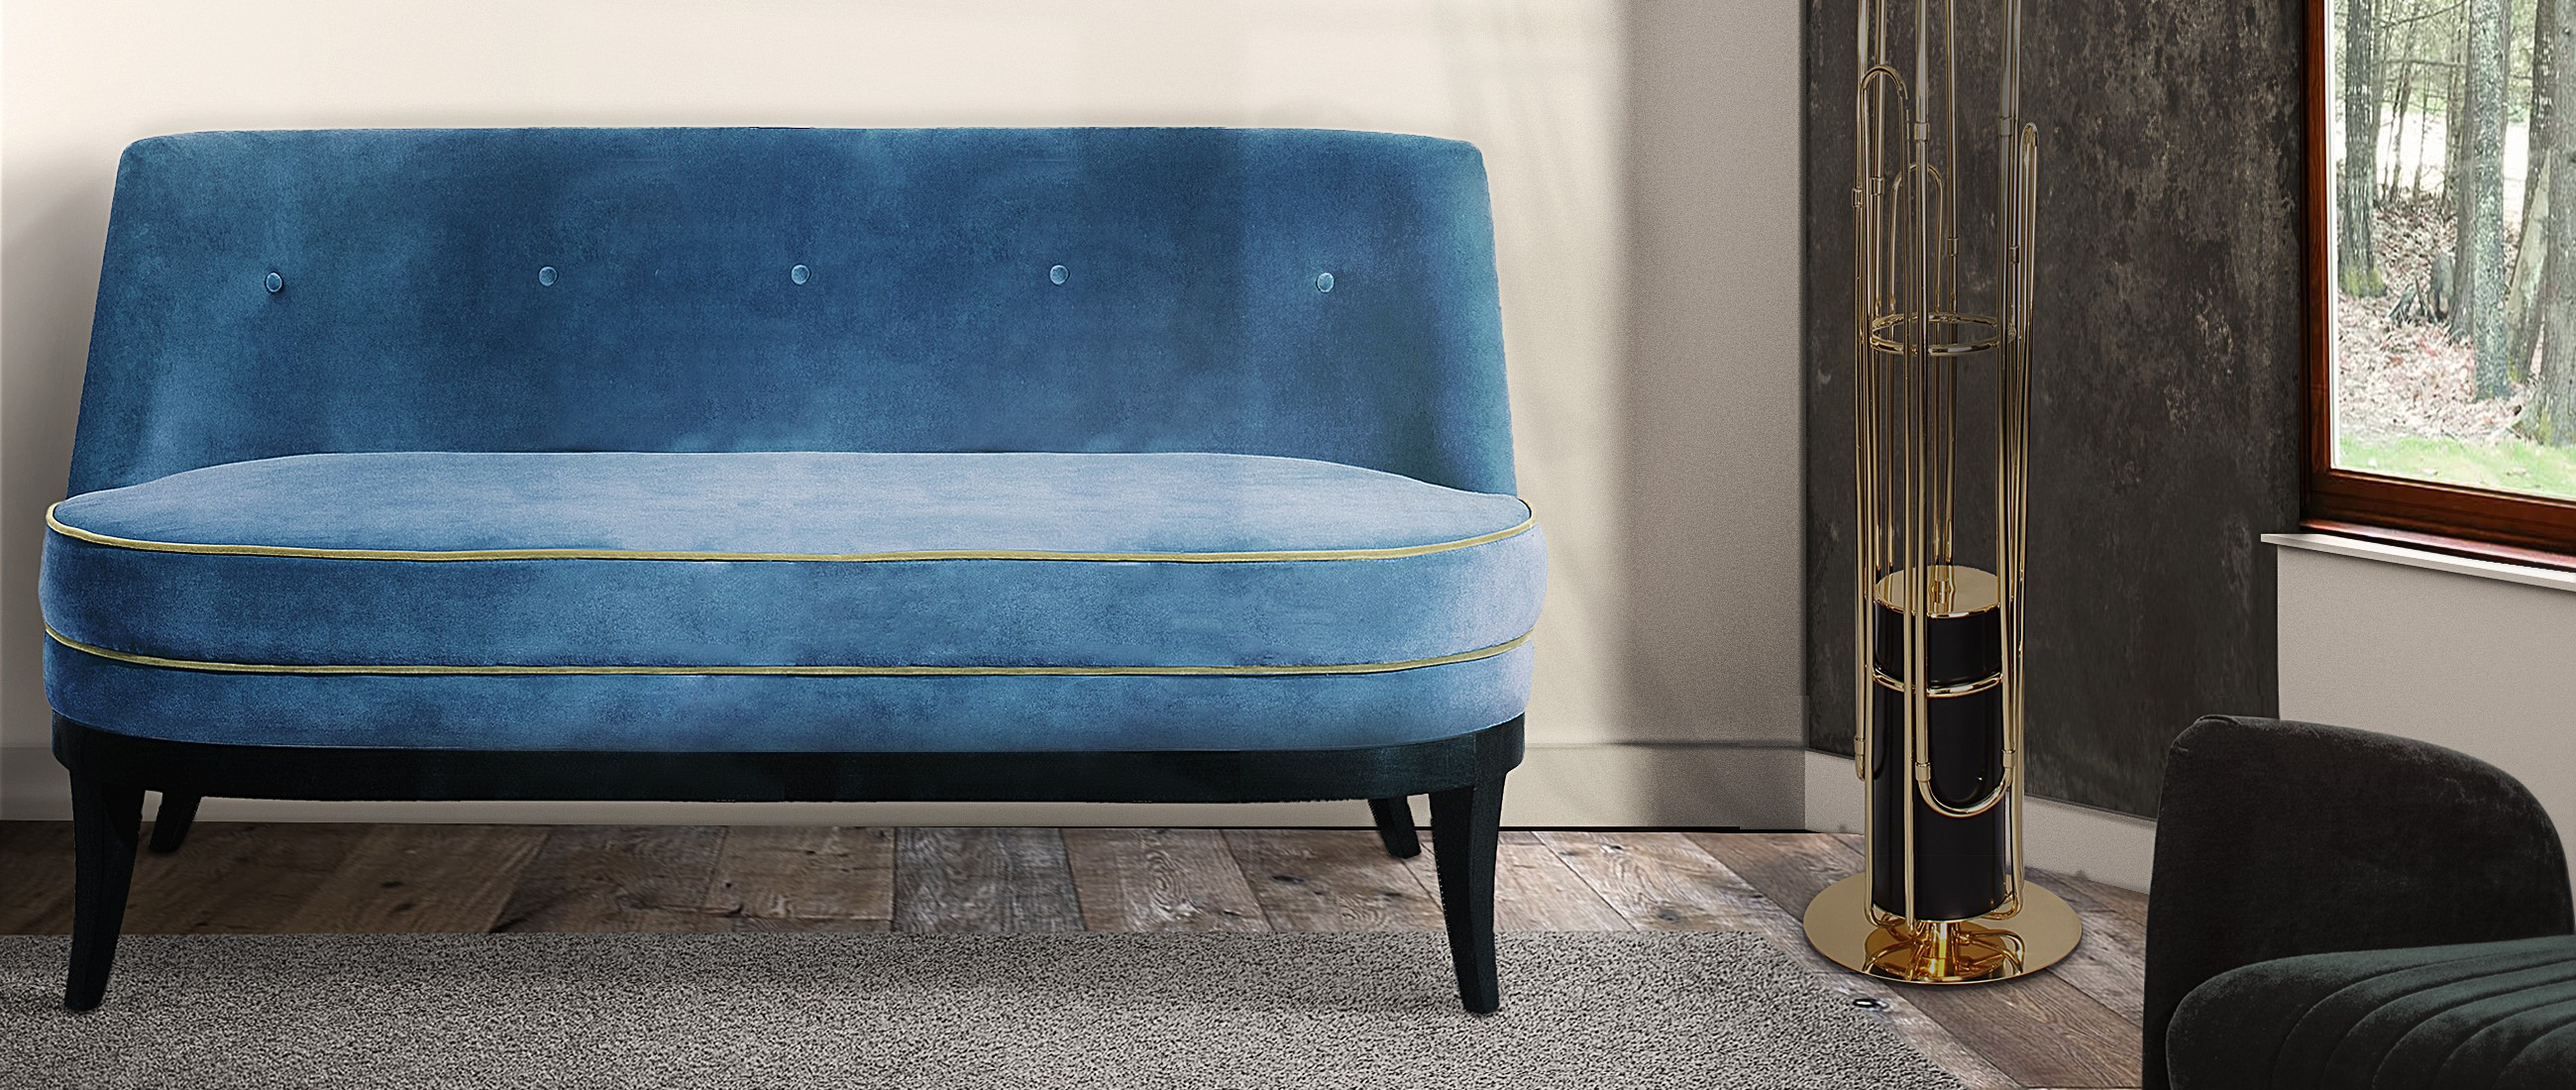 Marylin twin seat in blue cotton velvet